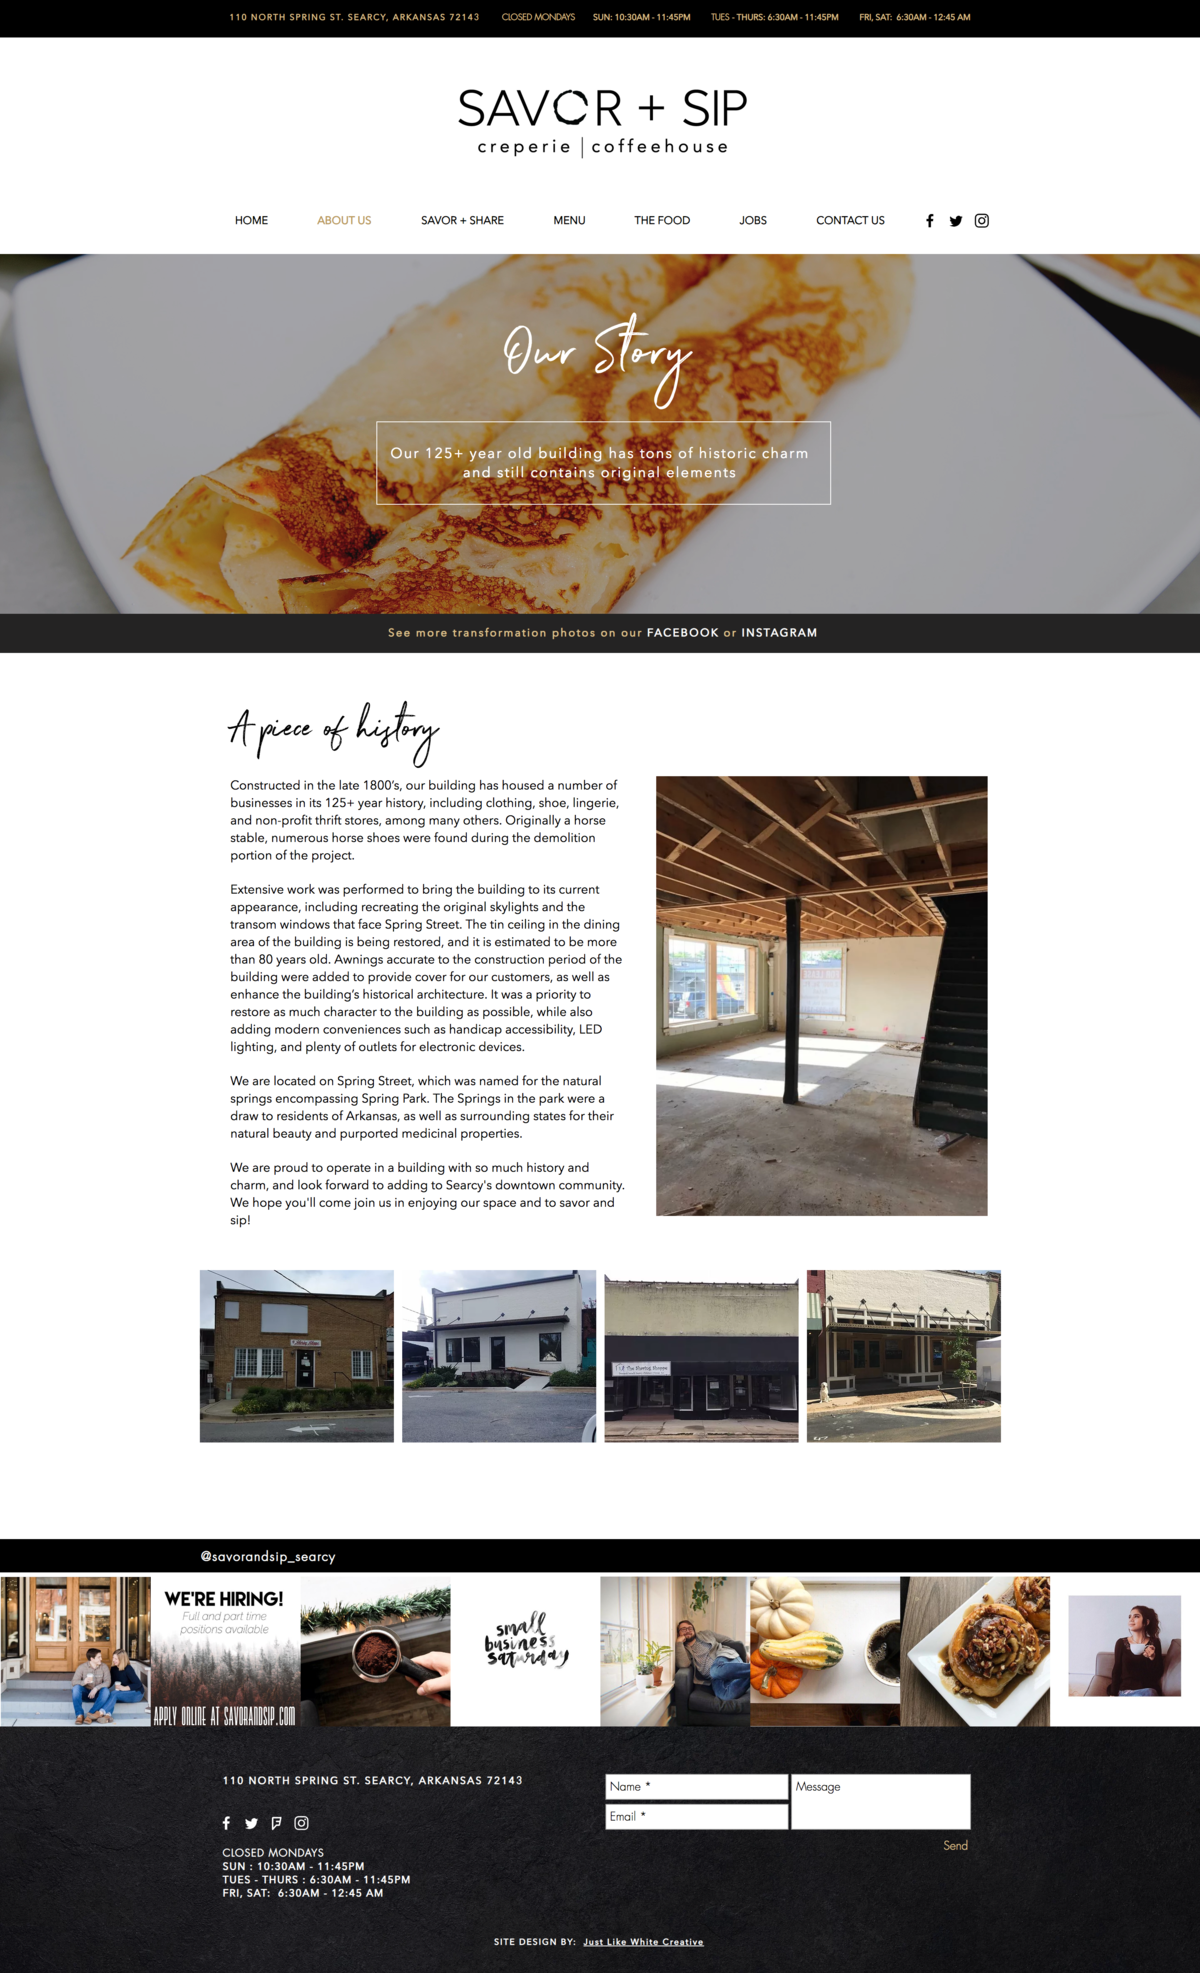 Design of coffee house and cafe website